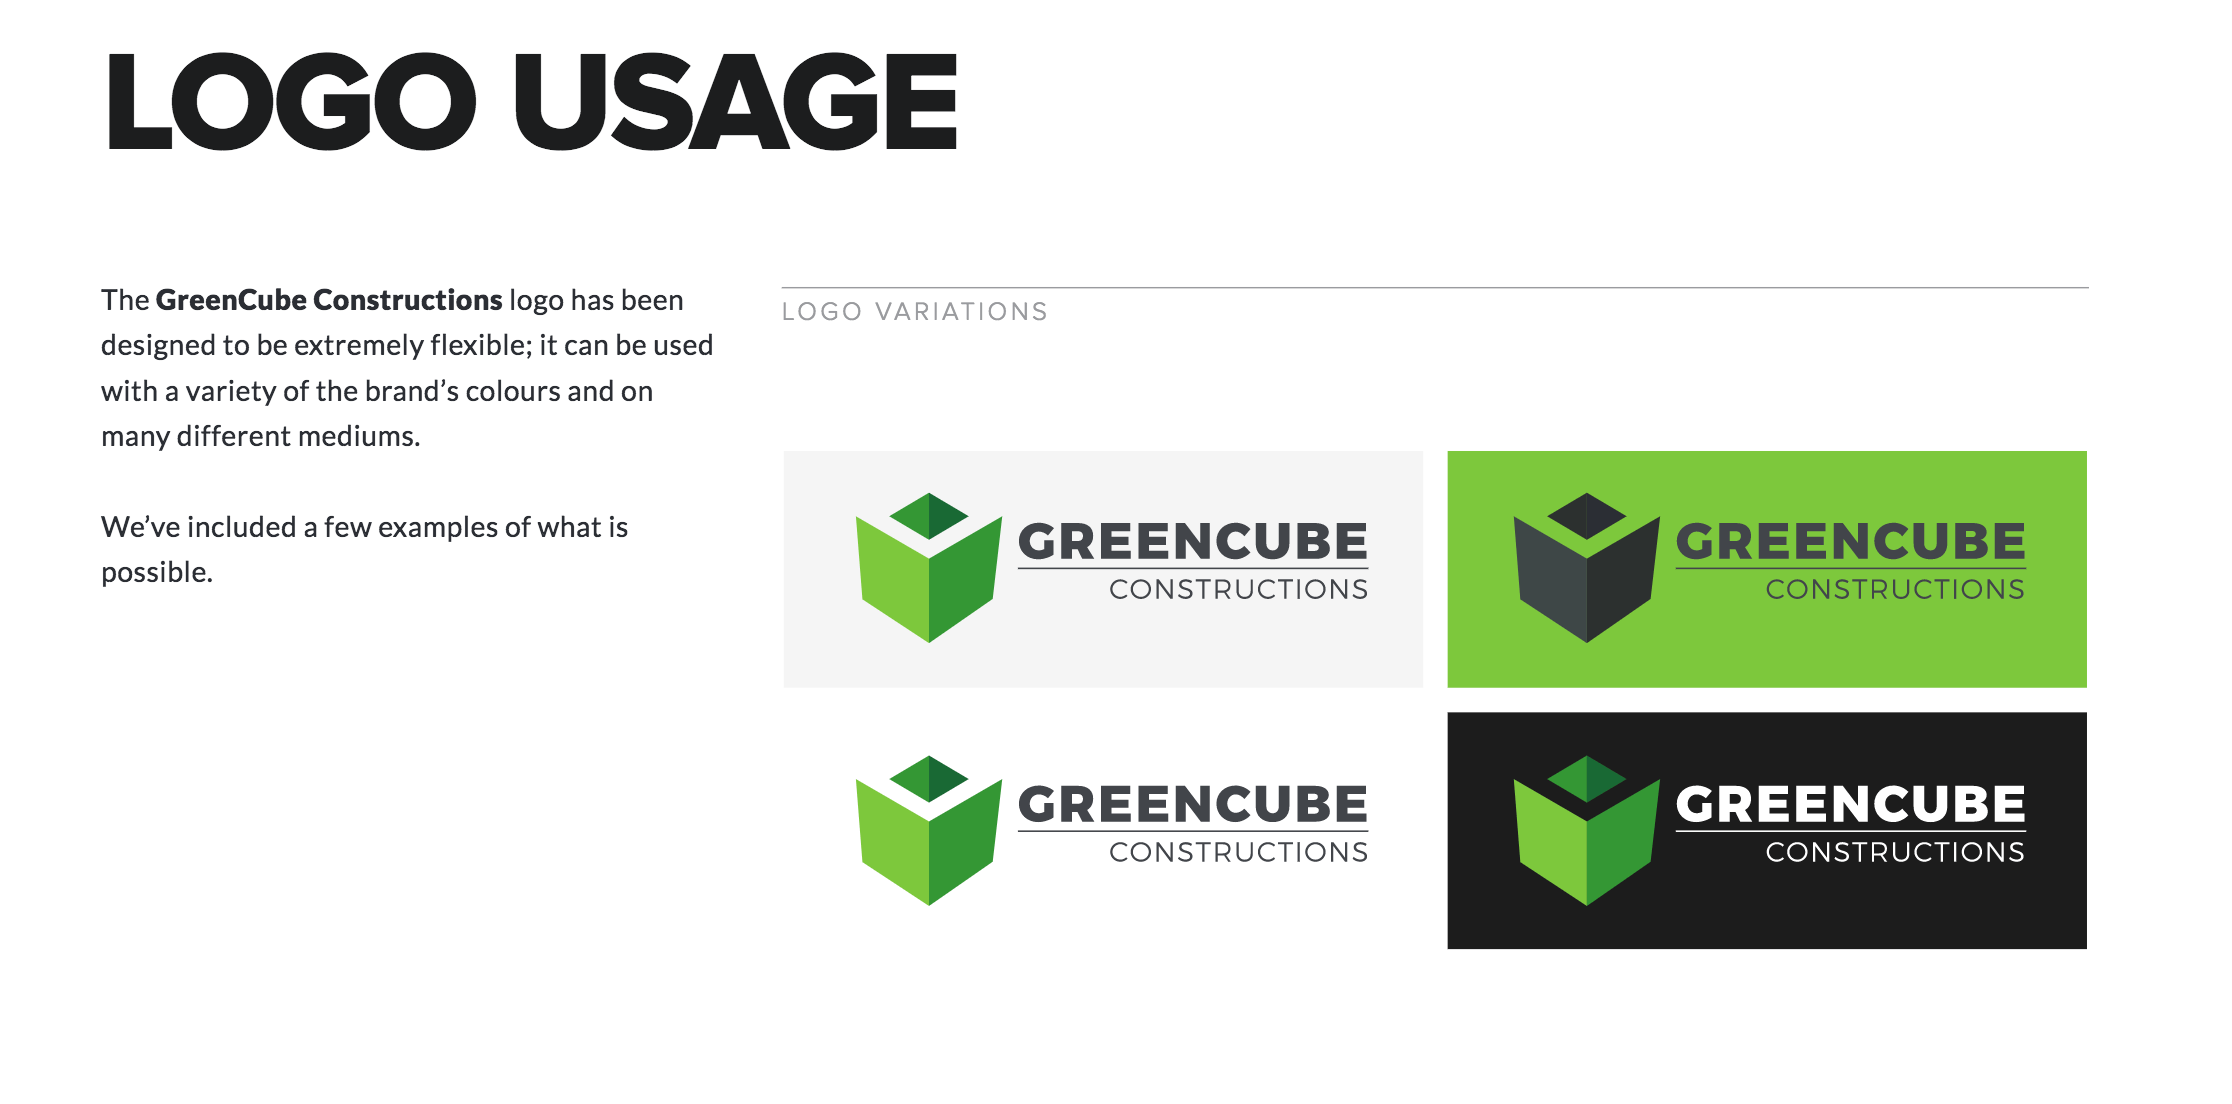 GreenCube Constructions Brand Guidelines Document